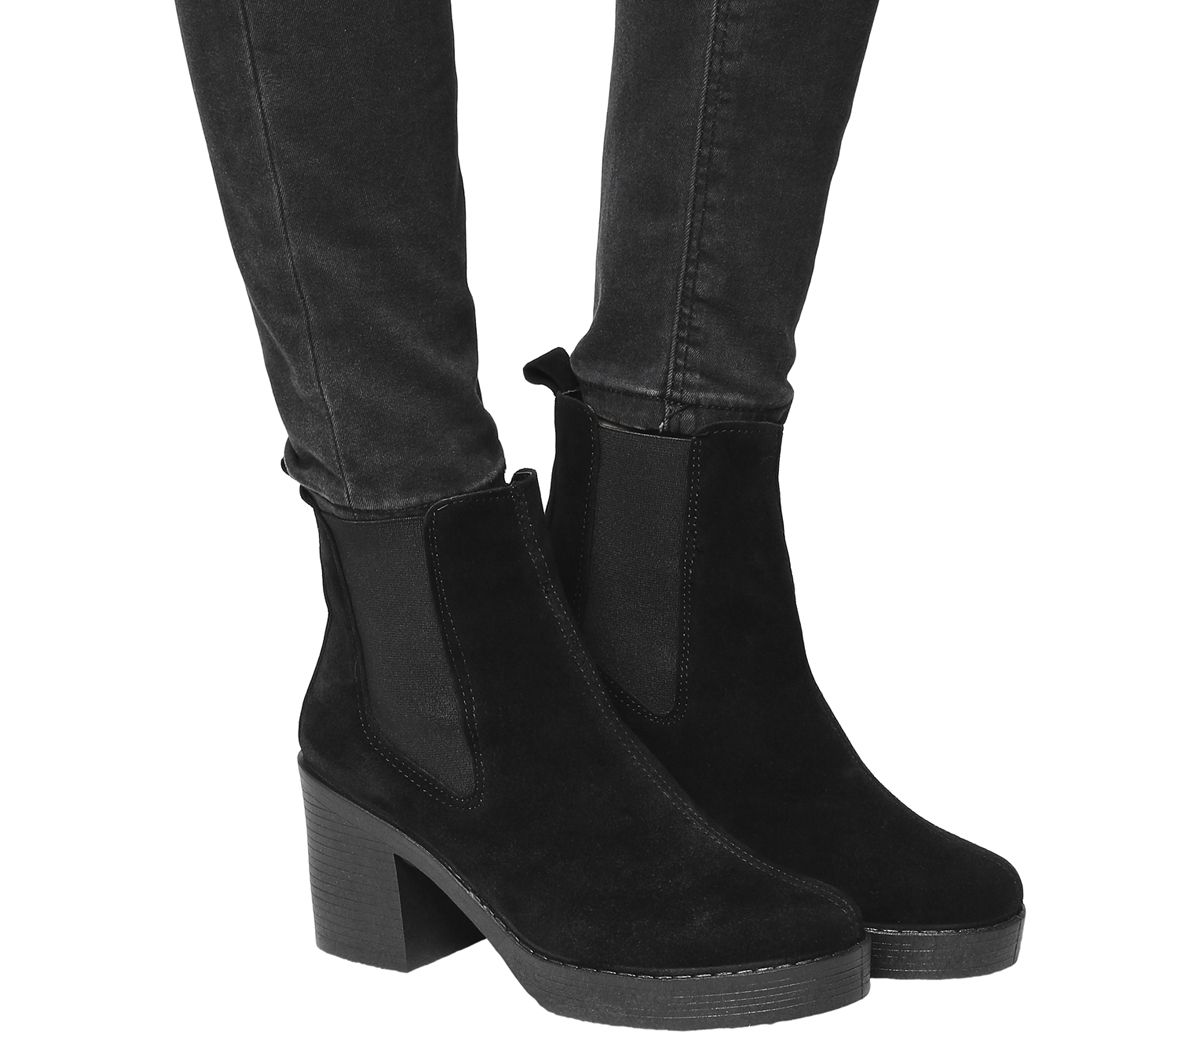 7e88c9a4cbcb Office Alesha Block Heel Chelsea Boots Black Suede - Ankle Boots